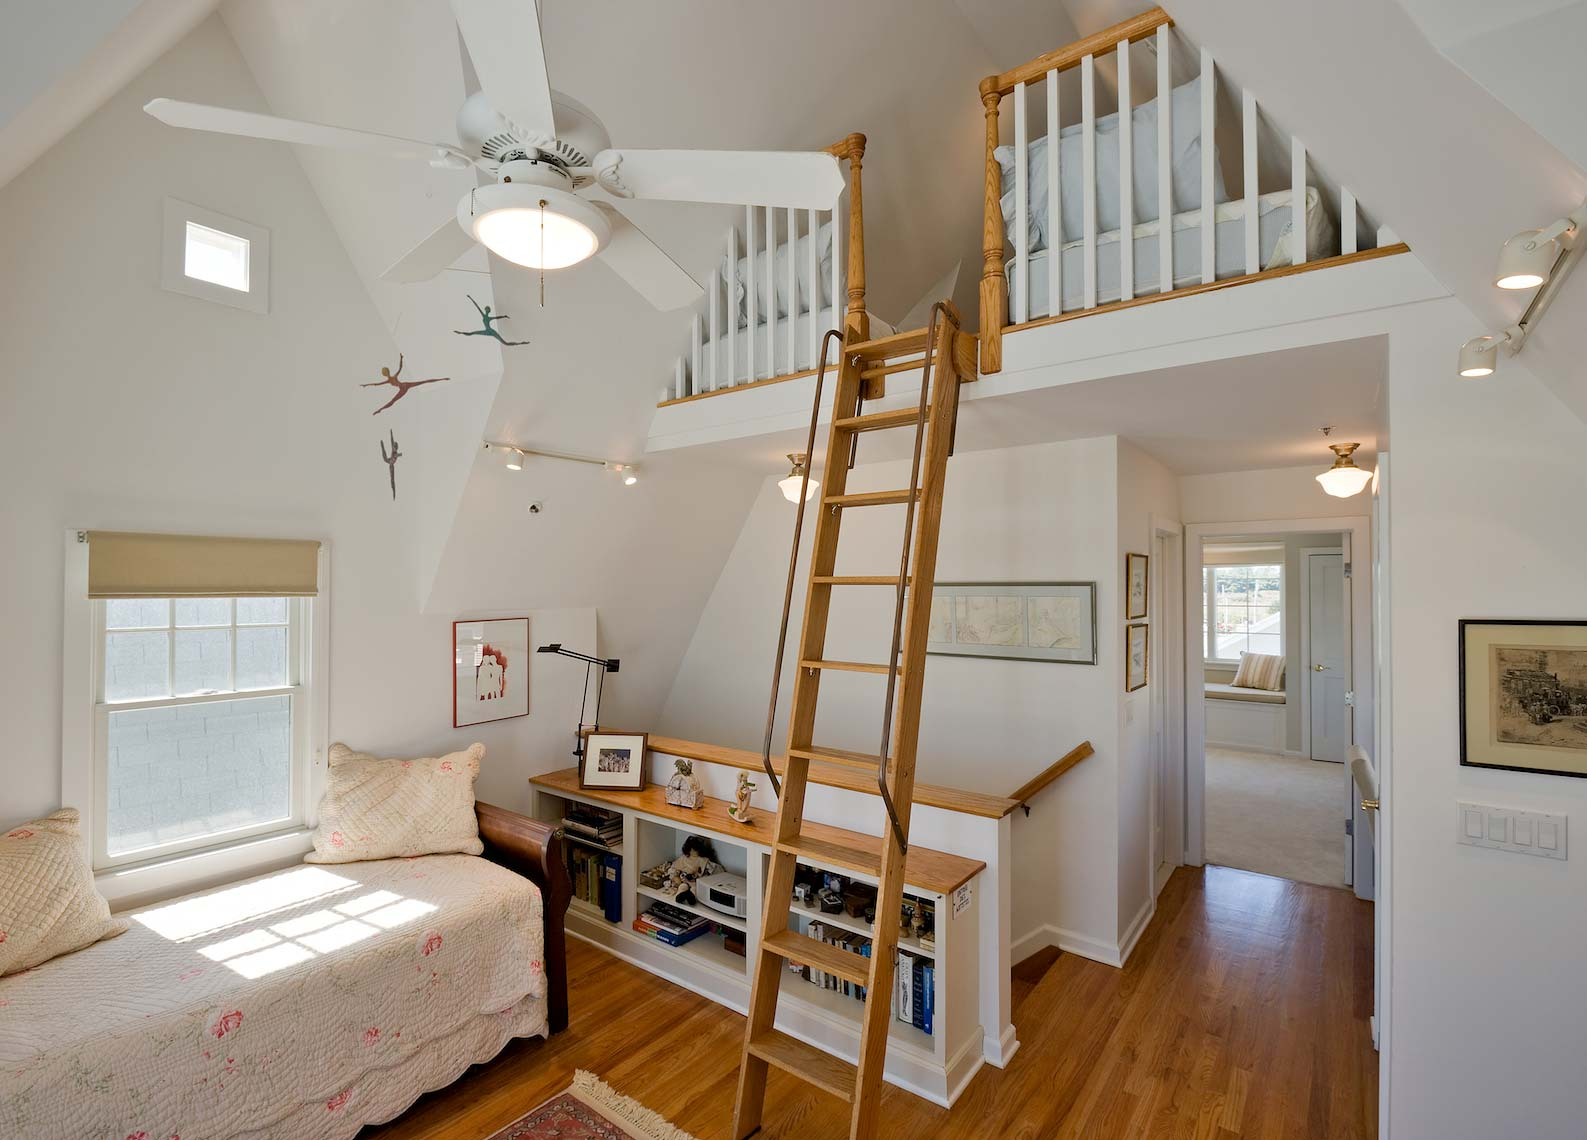 Beach house - Bedroom and Loft - Manasquan, NJ